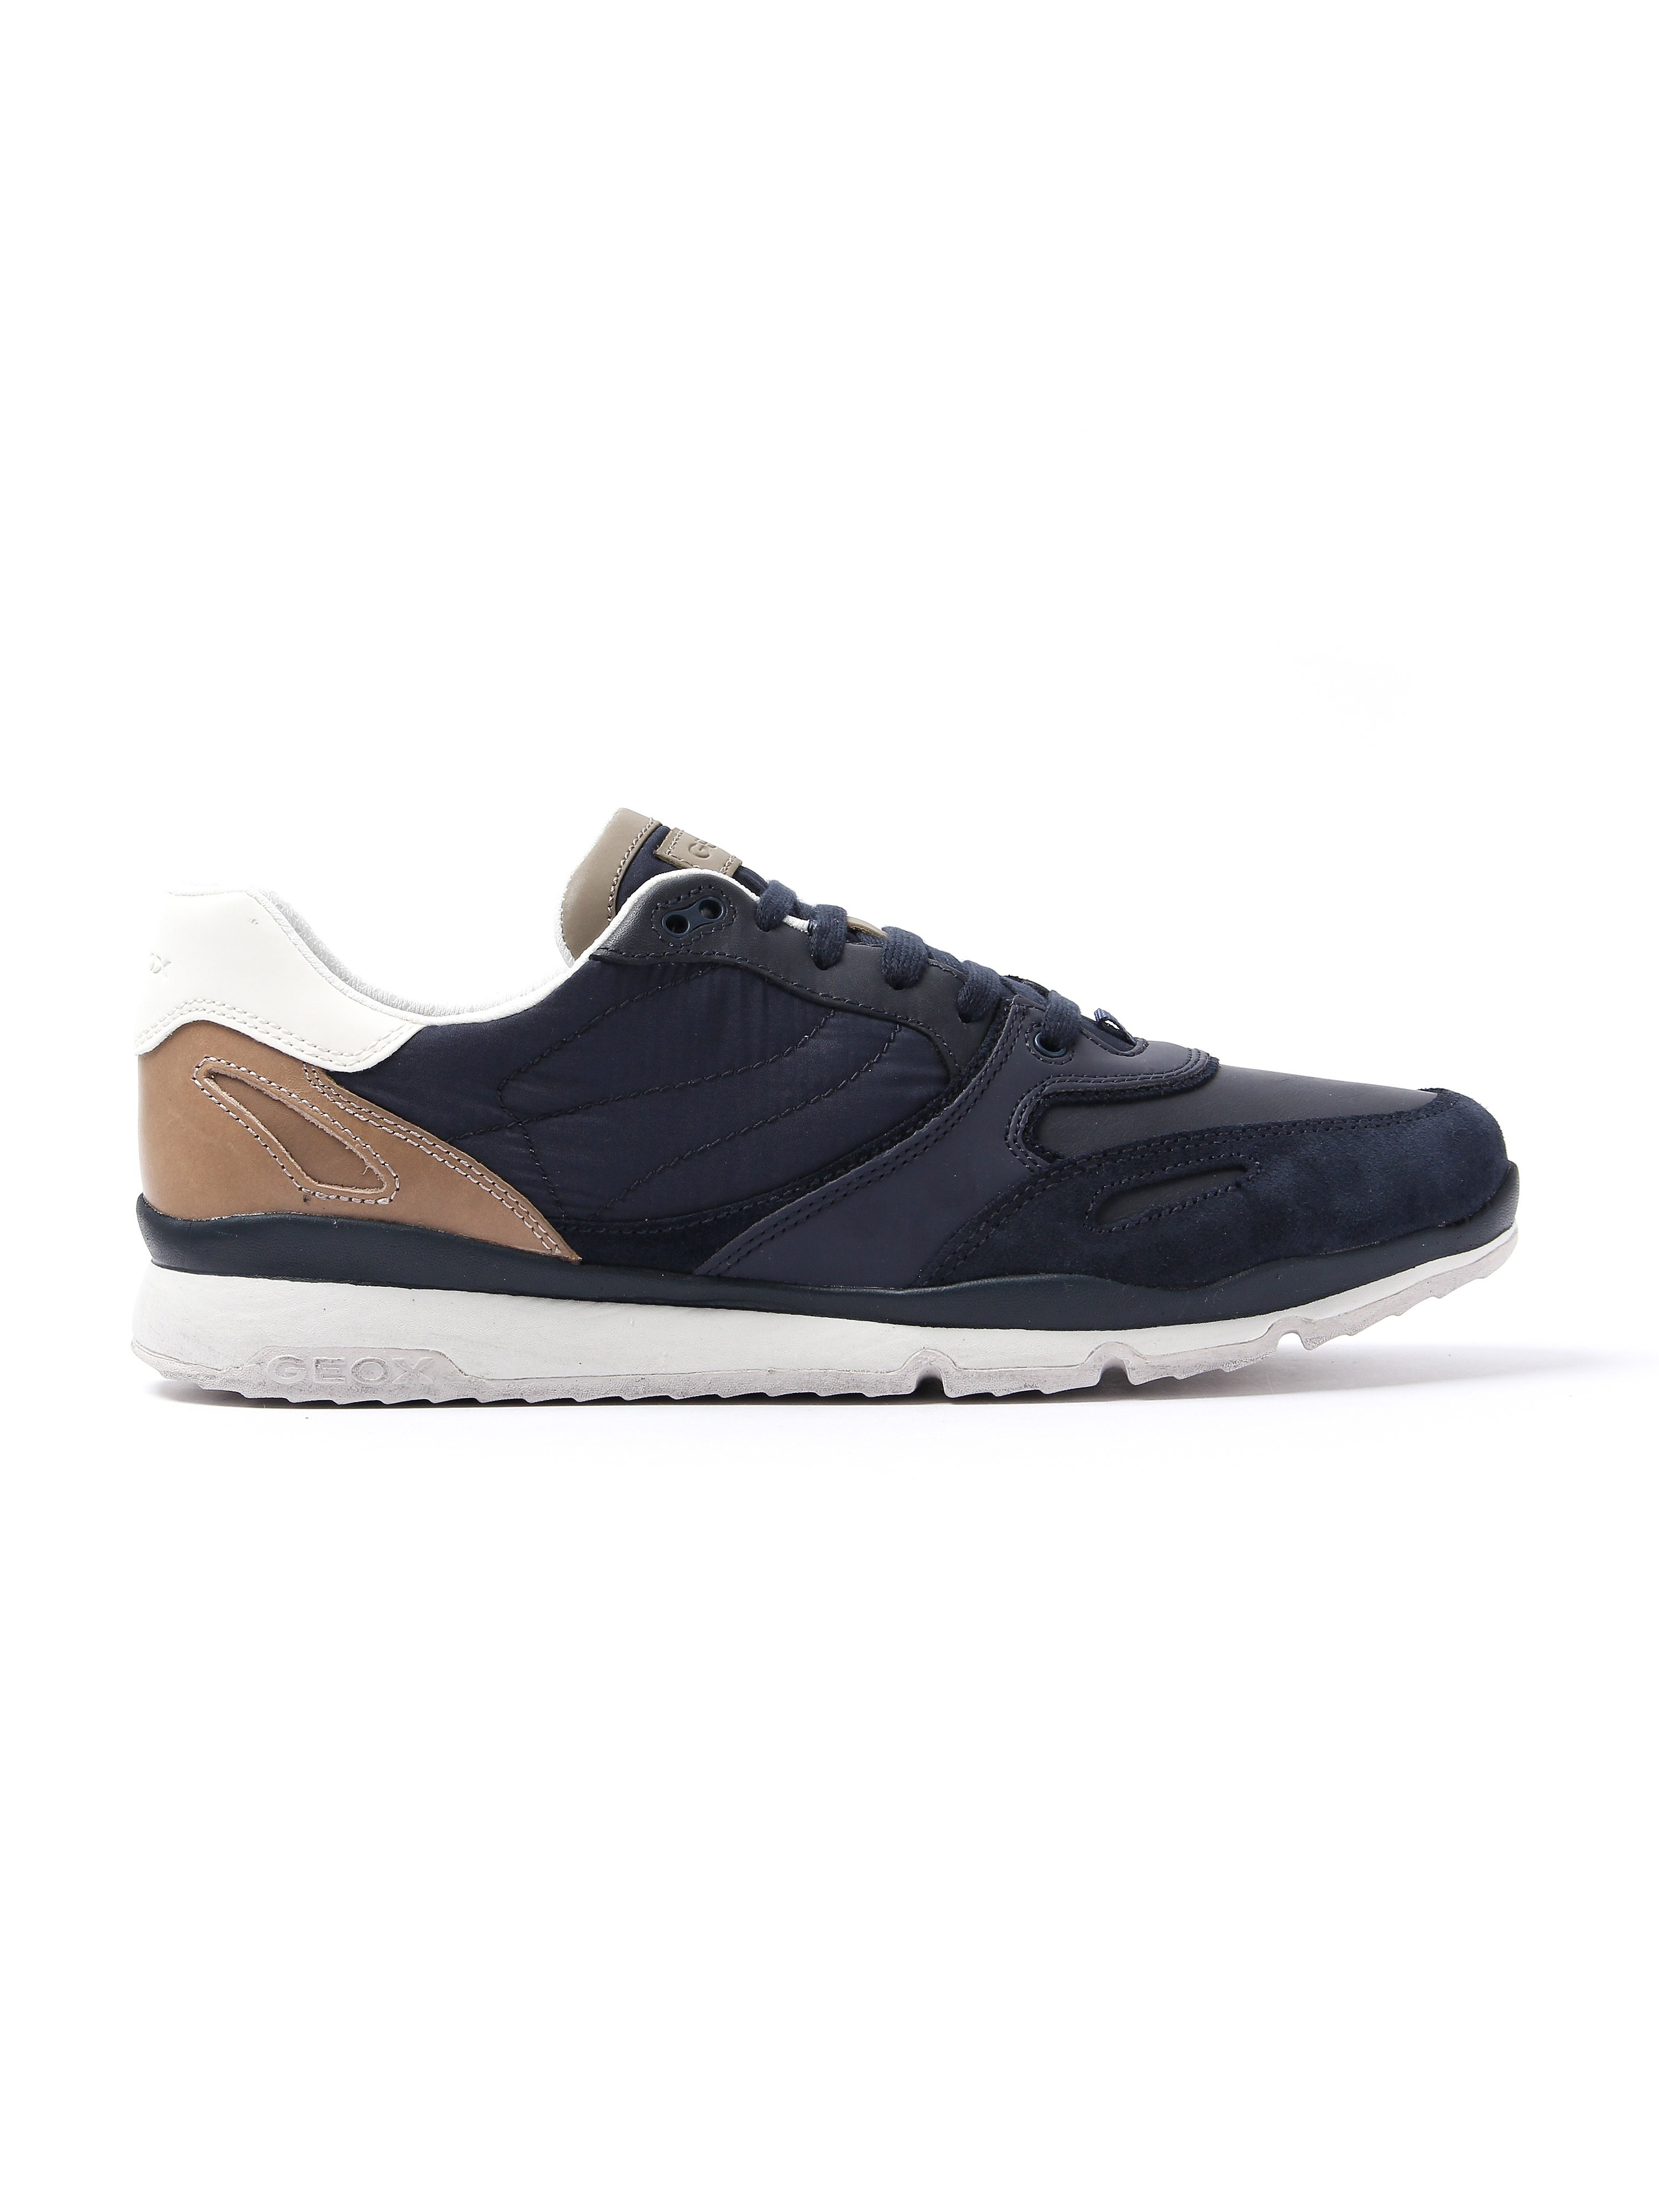 Geox Men's Sandford Suede & Nylon Trainers - Navy